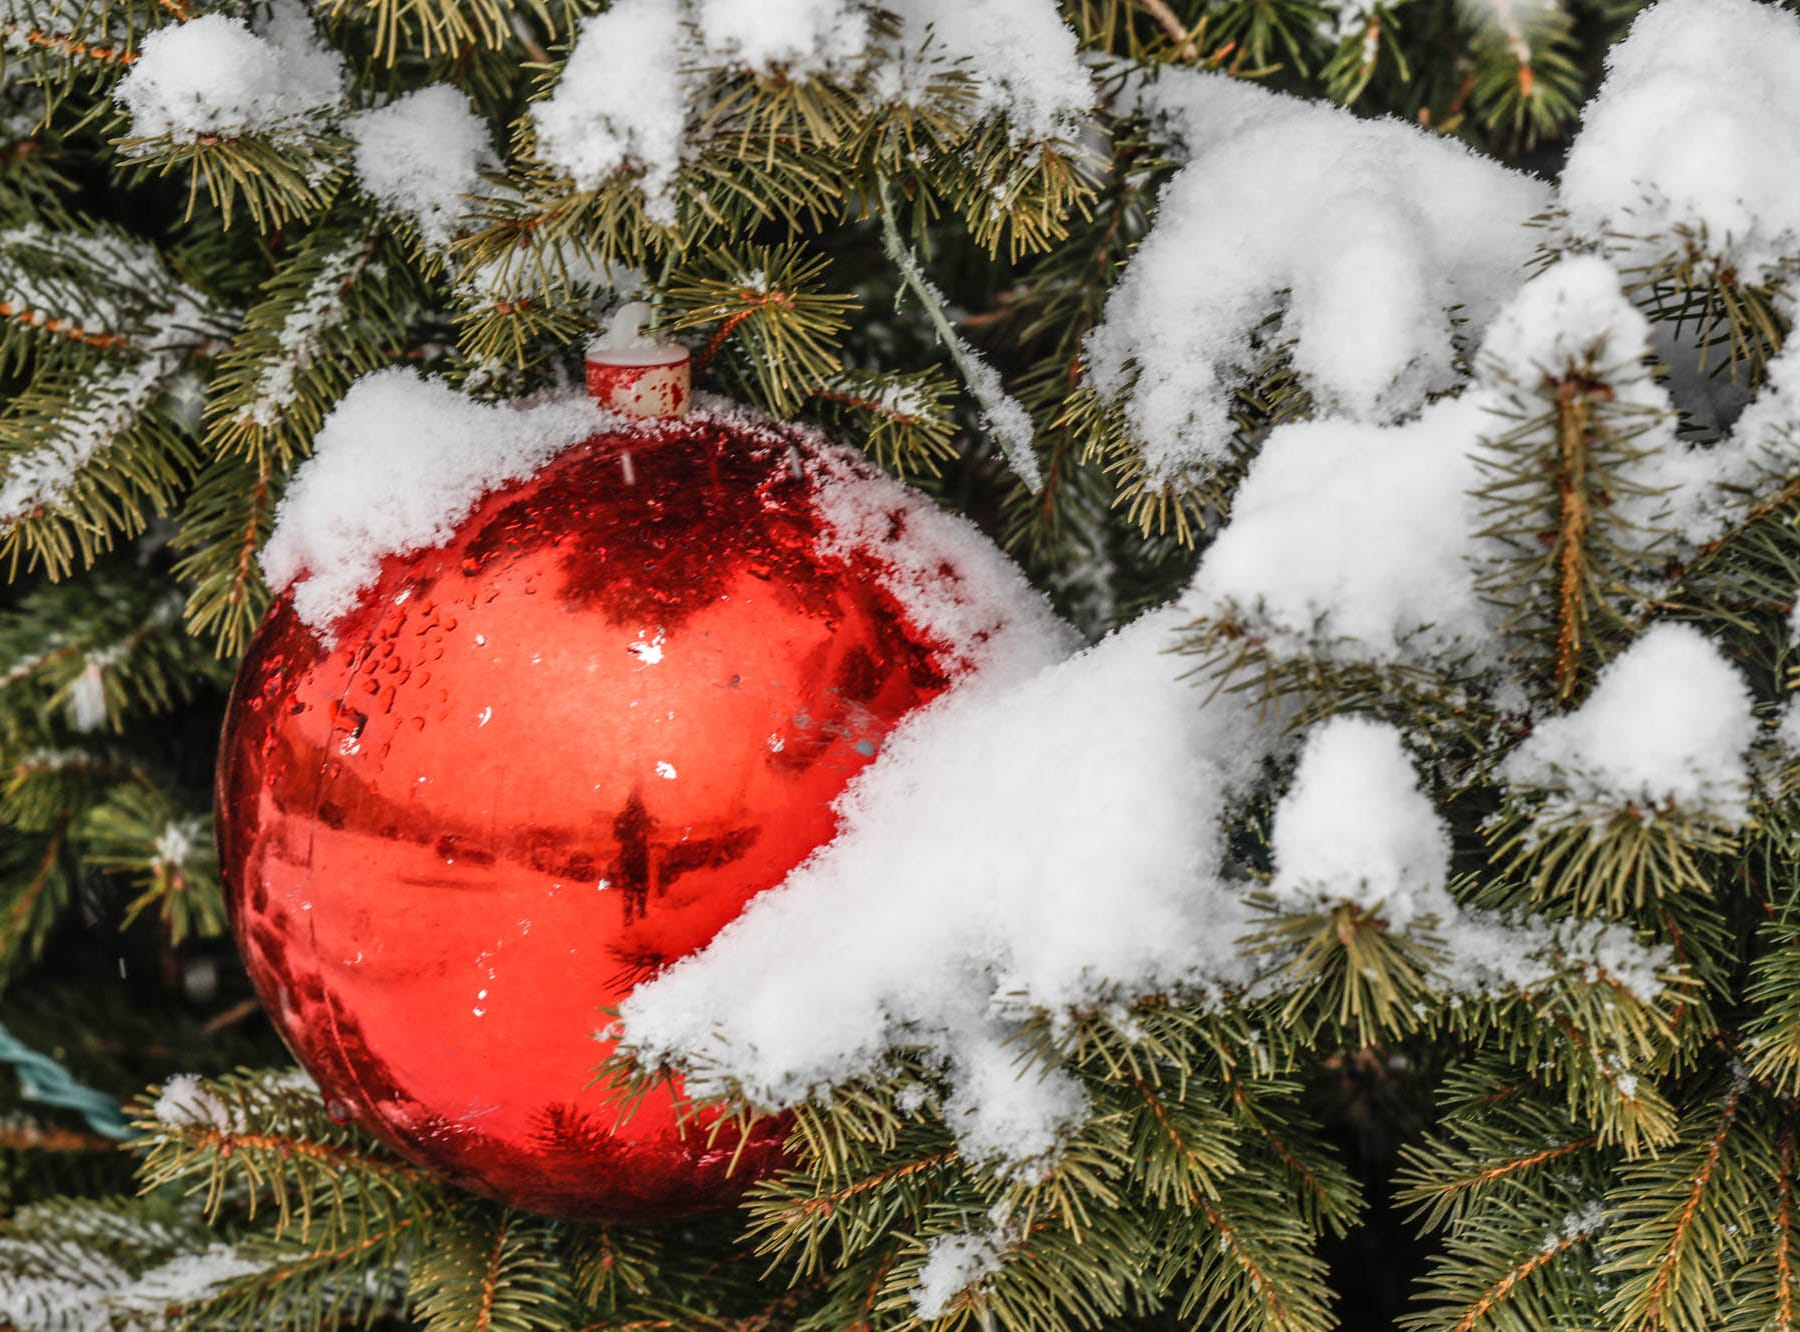 Snow coats Christmas decorations on a pine tree along Illinois St. in Indianapolis on Sunday, Feb. 10, 2019.